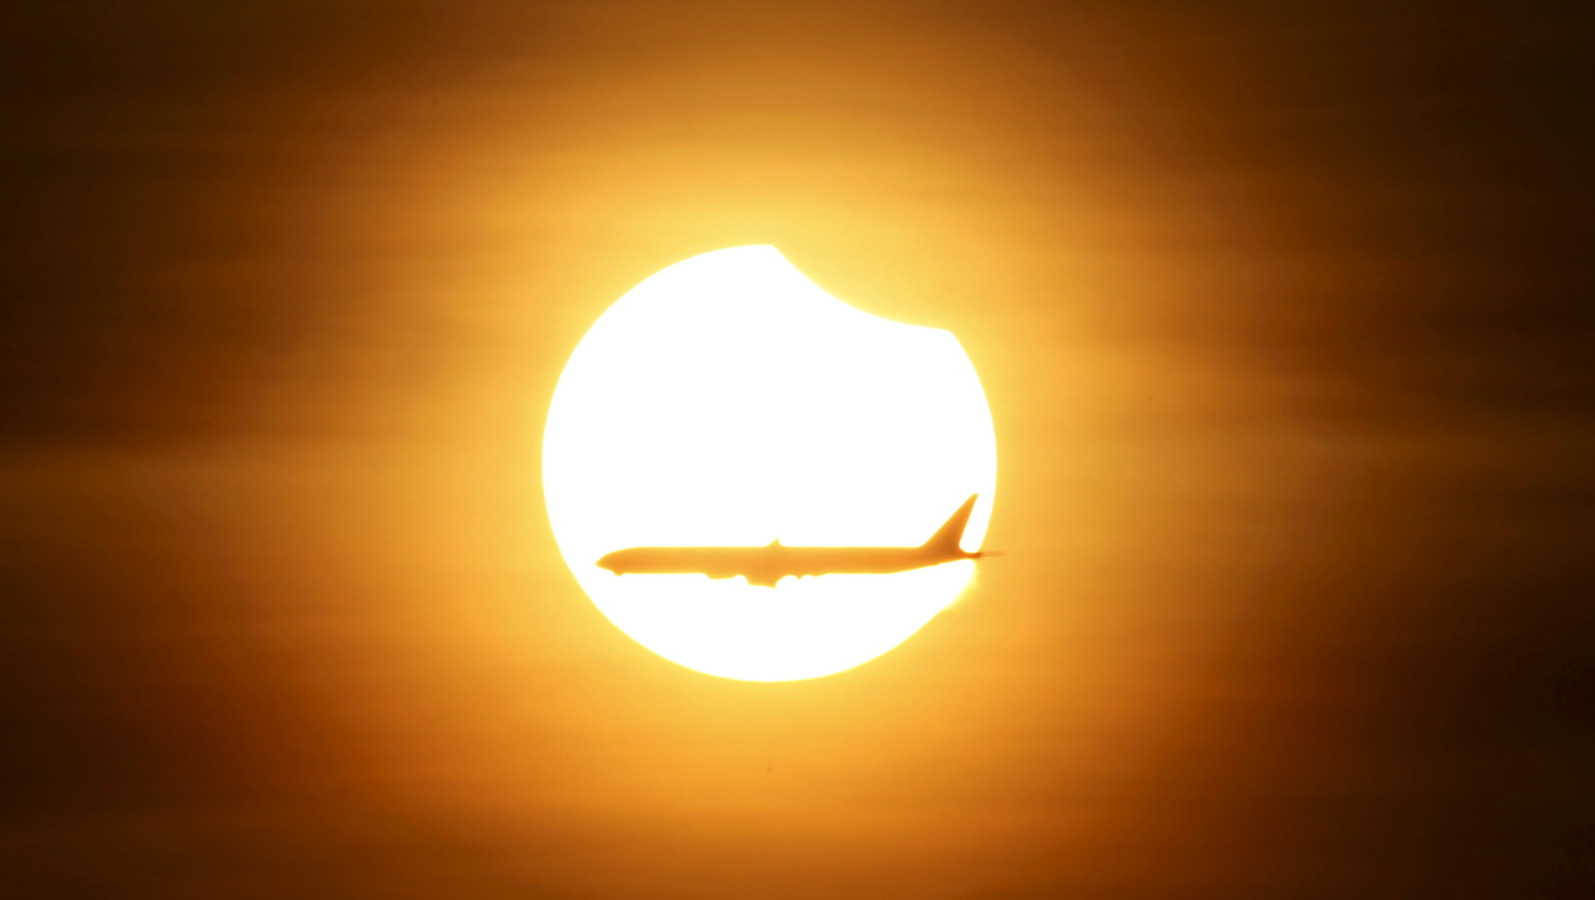 An airplane flying past the sun